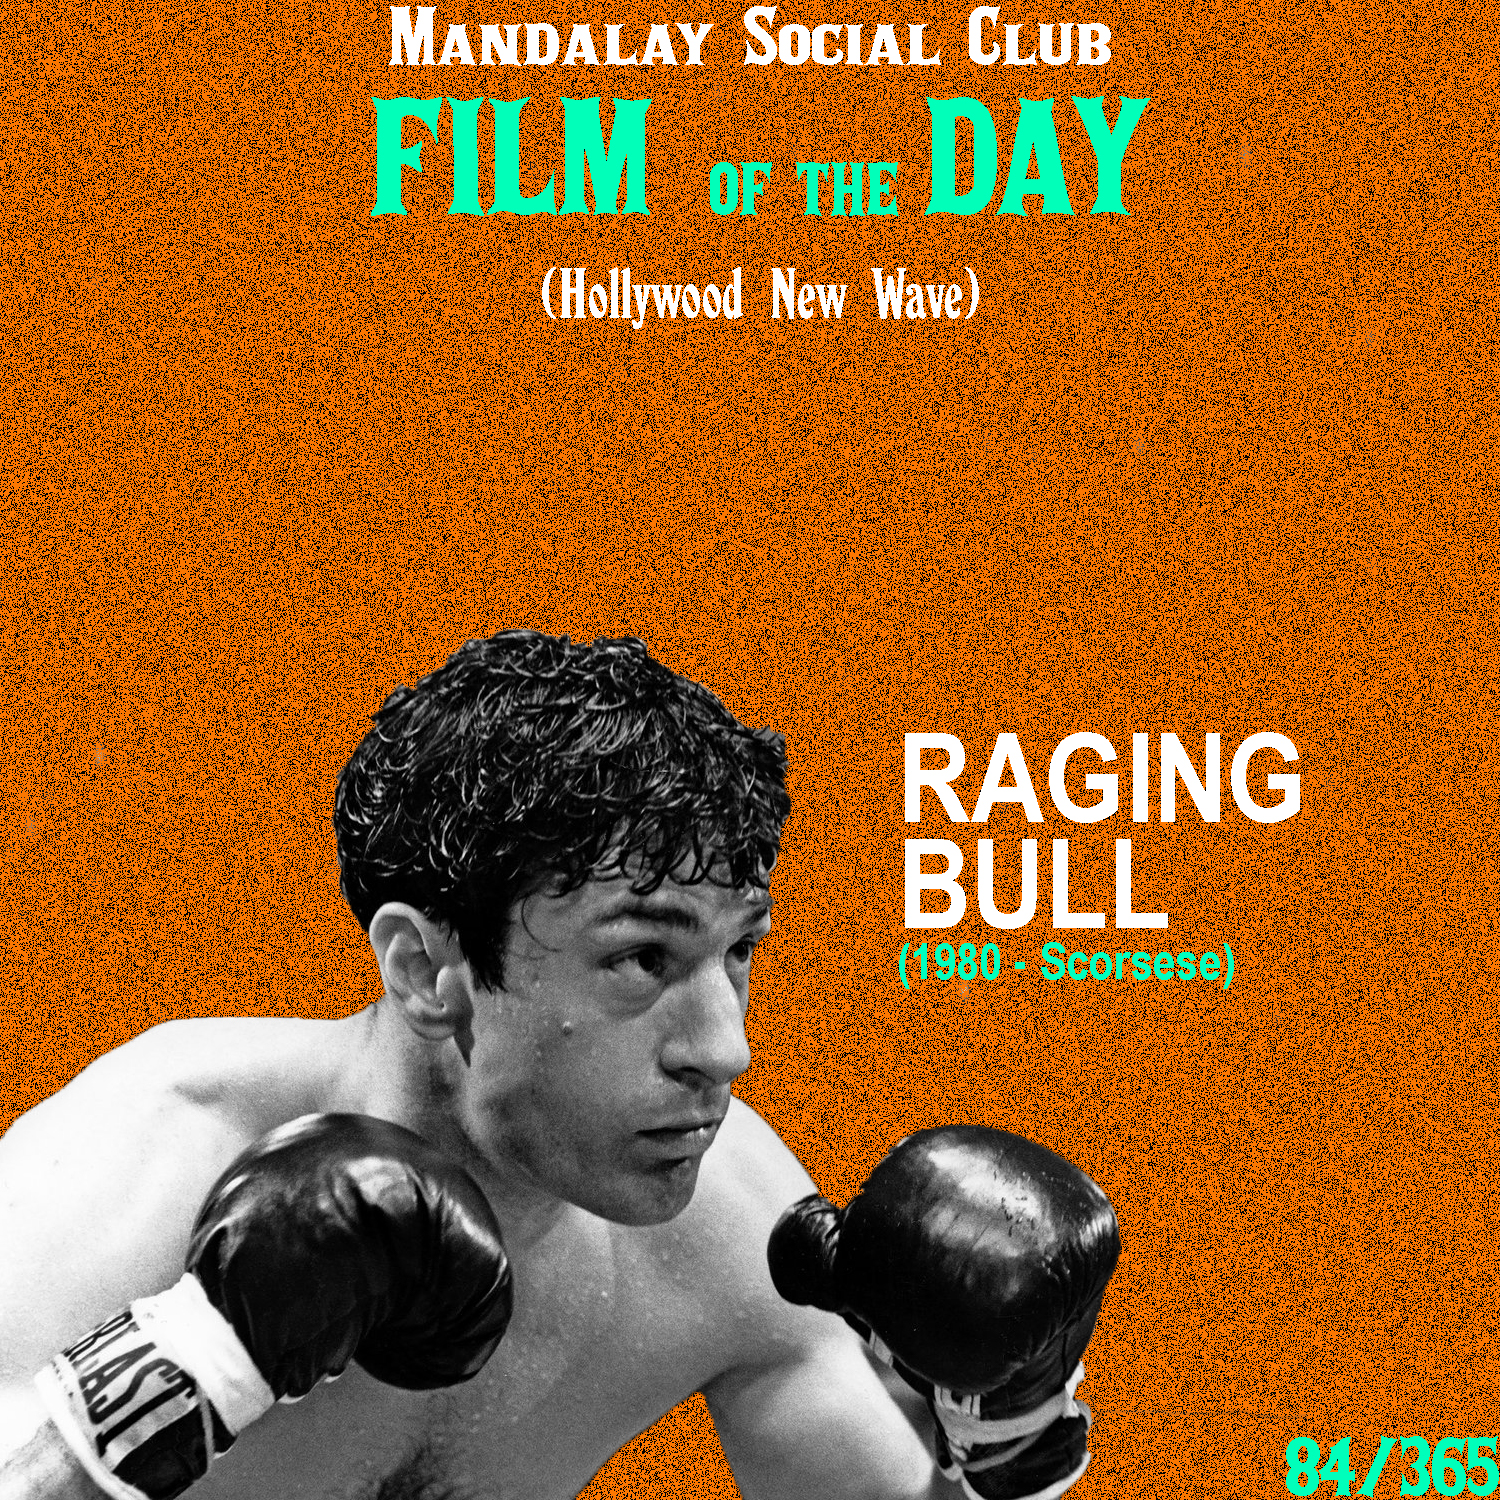 Raging Bull     (dir. Martin Scorsese)   Martin Scorsese is an all time favorite of the 'Hollywood Brats' and consistently makes some of the most important films, decade after decade.   Raging Bull  is an in-depth character study on champion, middle-weight boxer Jake LaMotta and Scorsese favorite, Robert DeNiro plays the role of LaMotta. Where  Taxi Driver  acted as a character study on Travis Bickle, it only studied him over the course of a few months whereas with  Raging Bull,  we span across 20 years of LaMotta's life .   Scorsese's flair behind the camera is a definitive staple of the New Hollywood. The New Hollywood placed an emphasis on the auteur theory, taken from the French New Wave, and Scorsese is one of the most idiosyncratic filmmakers to come out of this generation. His encyclopedic knowledge of film history and theory allows him to constantly keep the viewer's attention and when you see a Scorsese film, you know it's a Scorsese film.    4/5     WATCH: iTunes